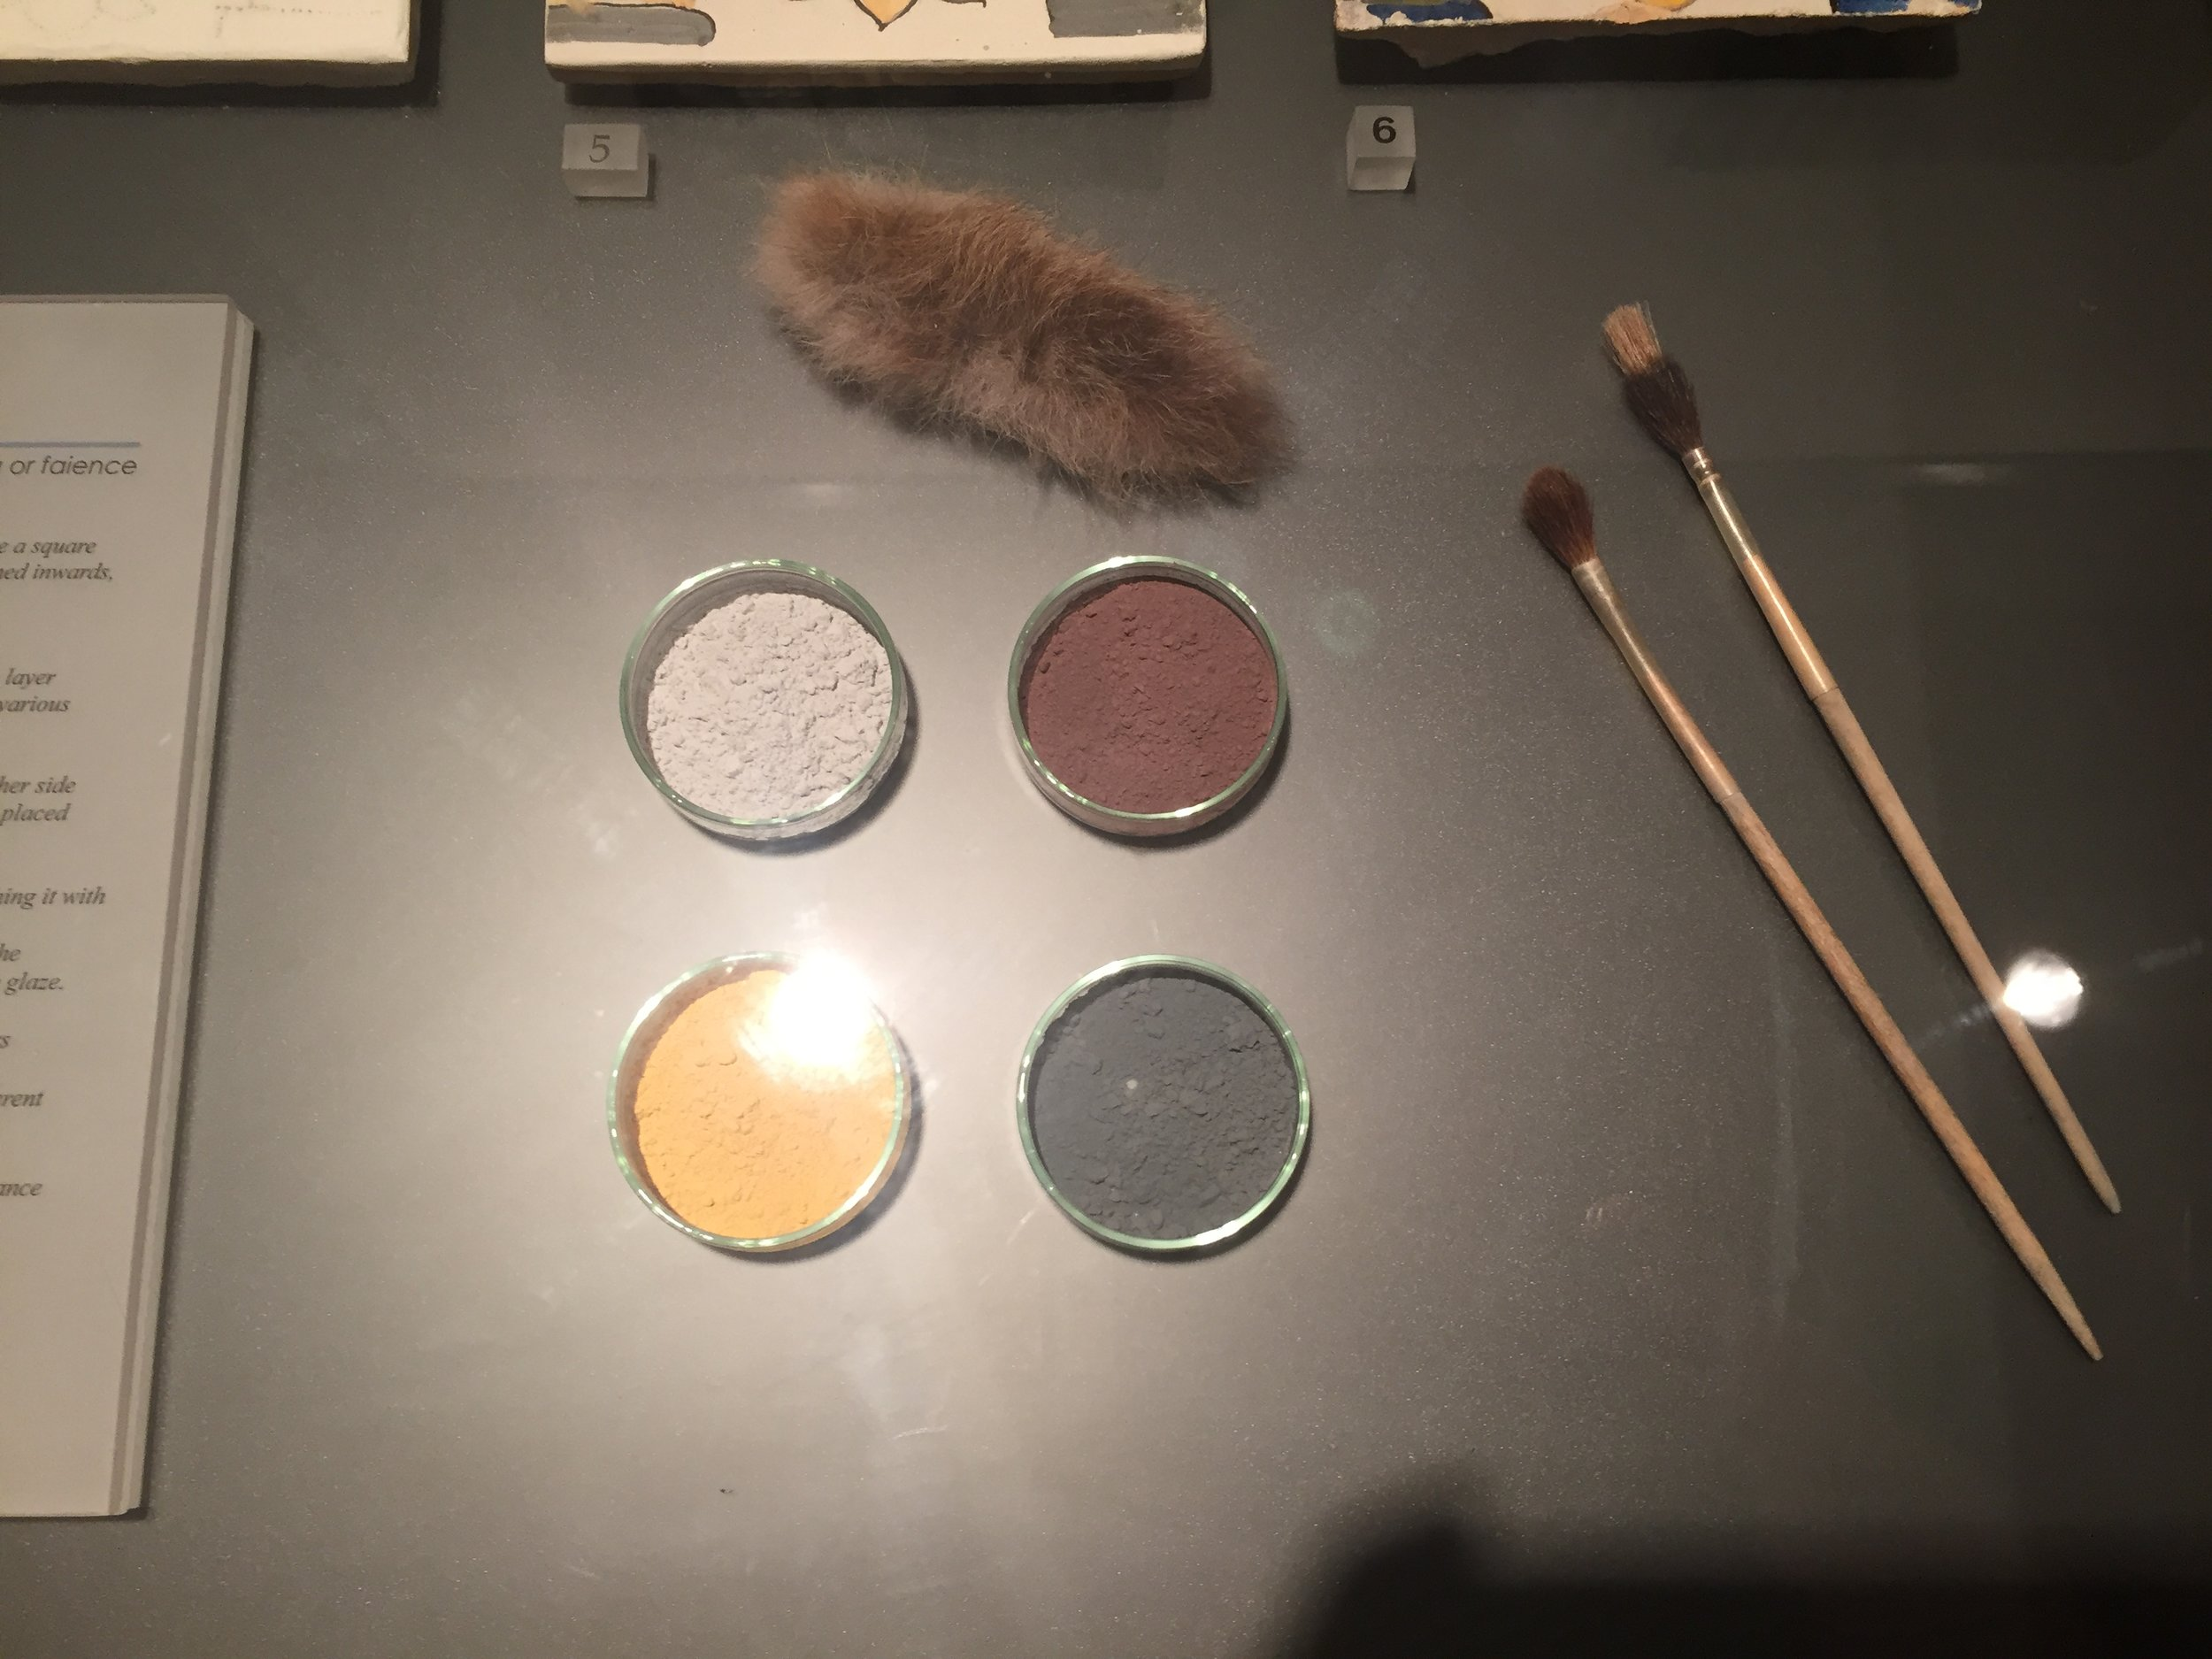 pigments, brushes